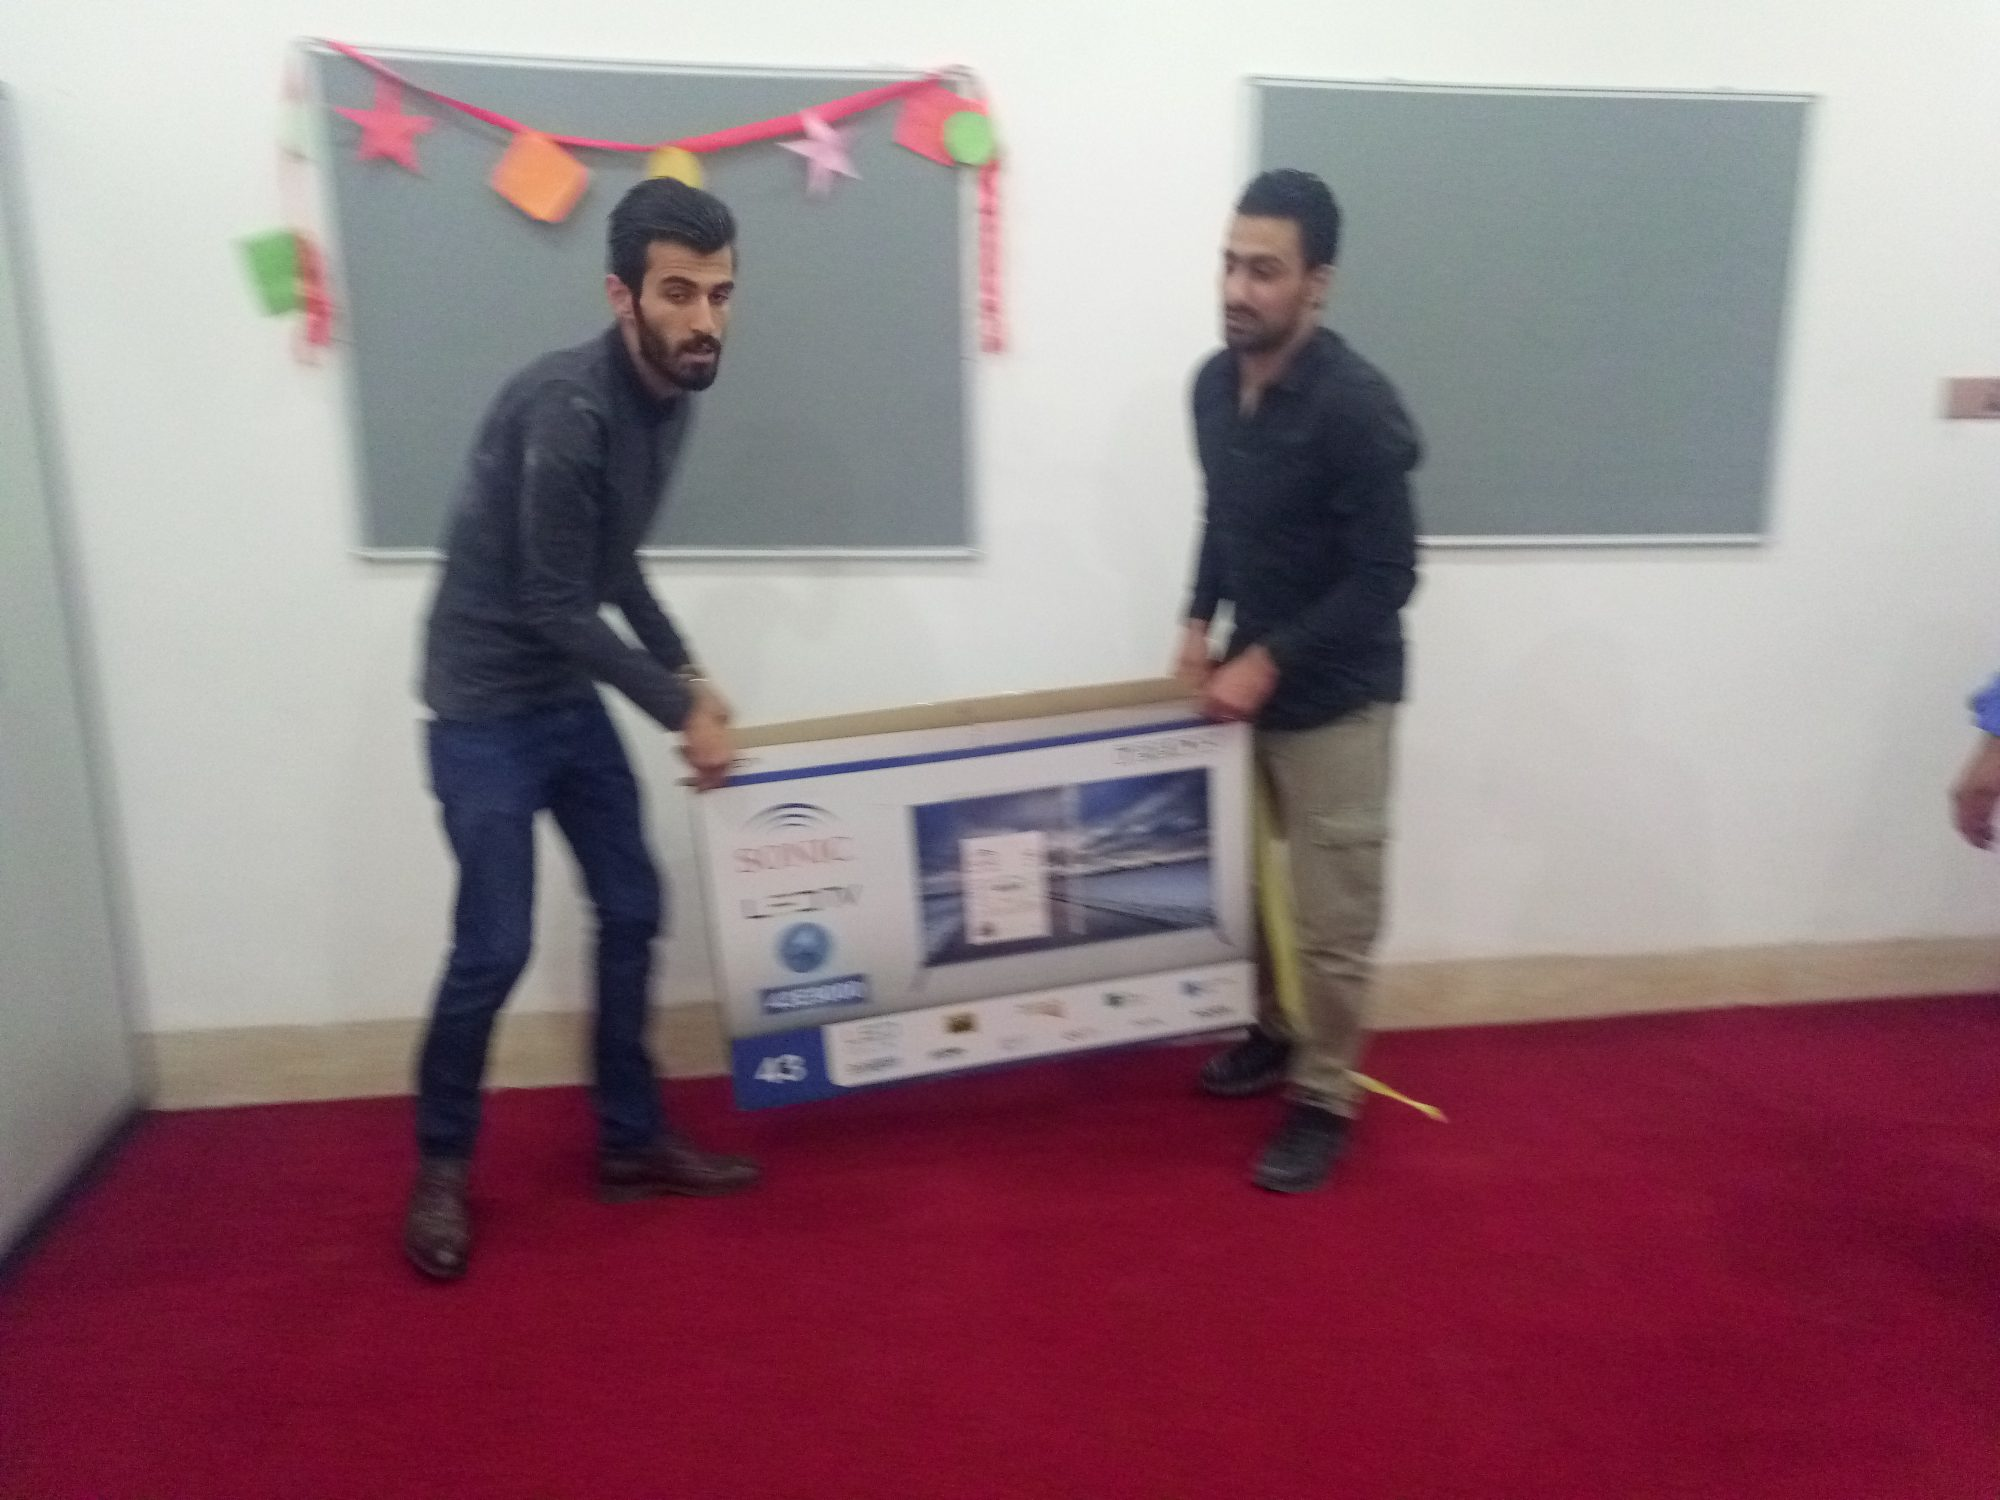 Help in making school and presenting school objects for lovely children in Soran City - Erbil